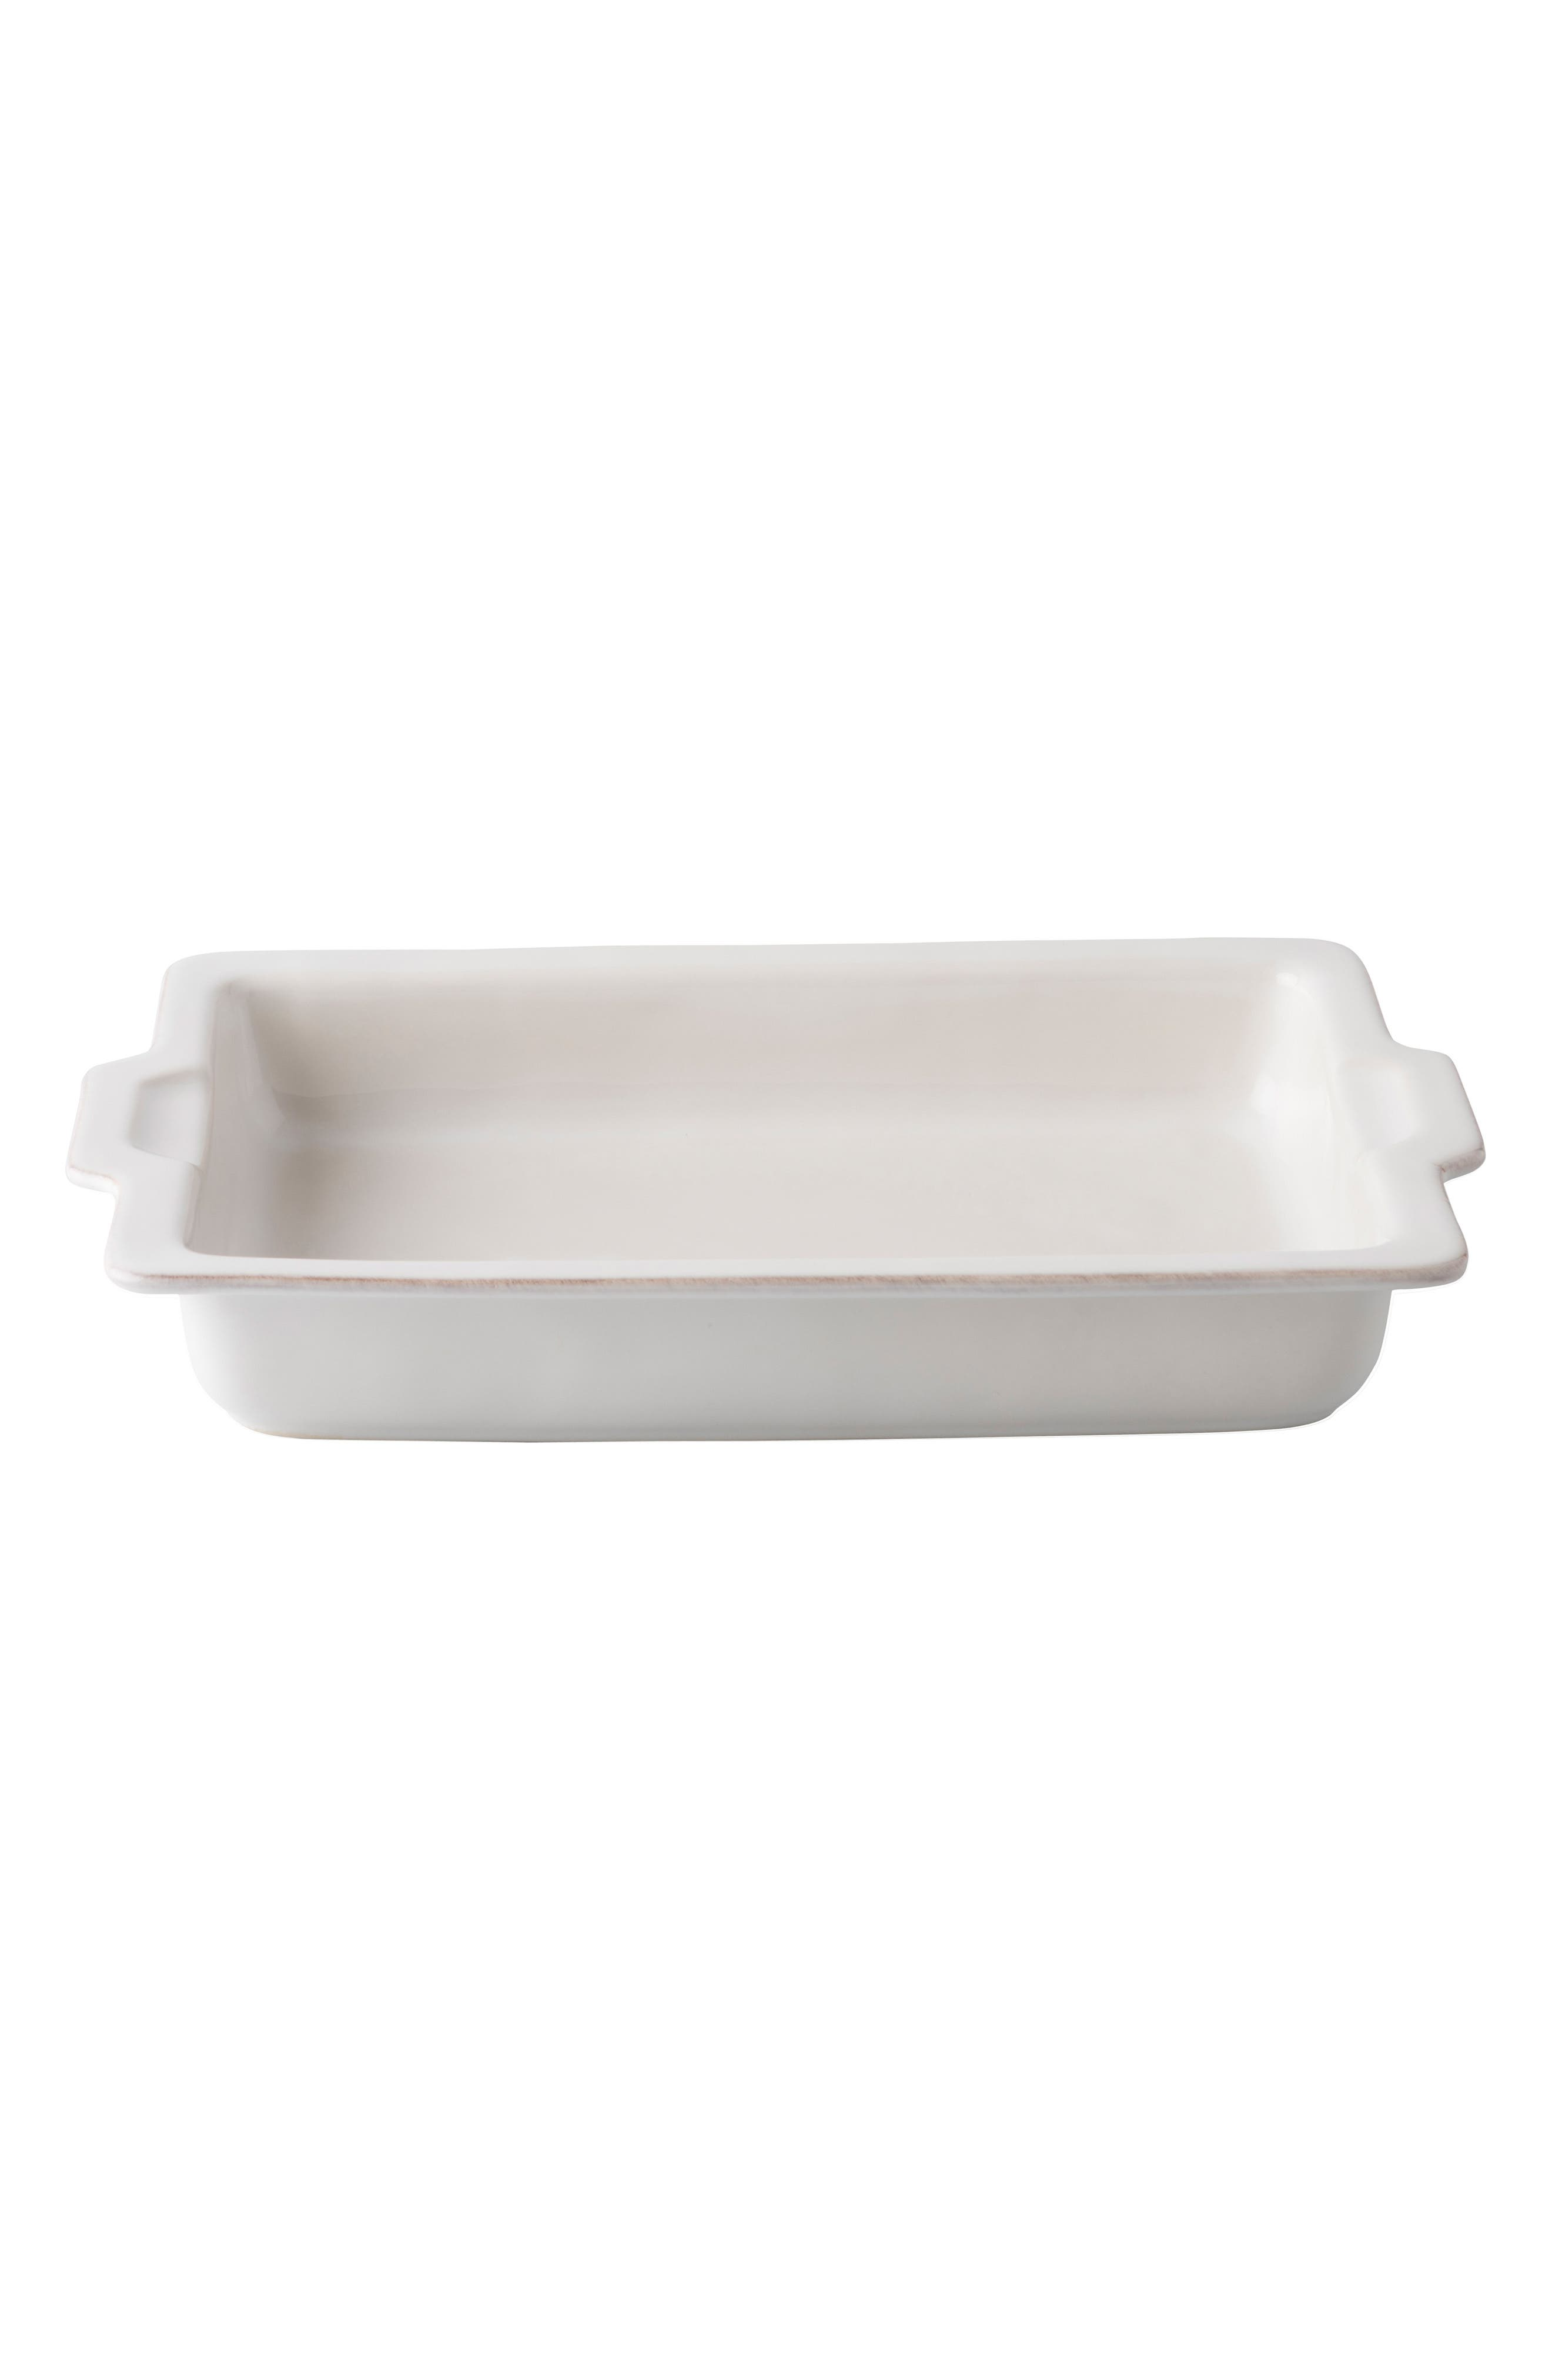 Alternate Image 1 Selected - Juliska Puro Large Ceramic Baking Dish